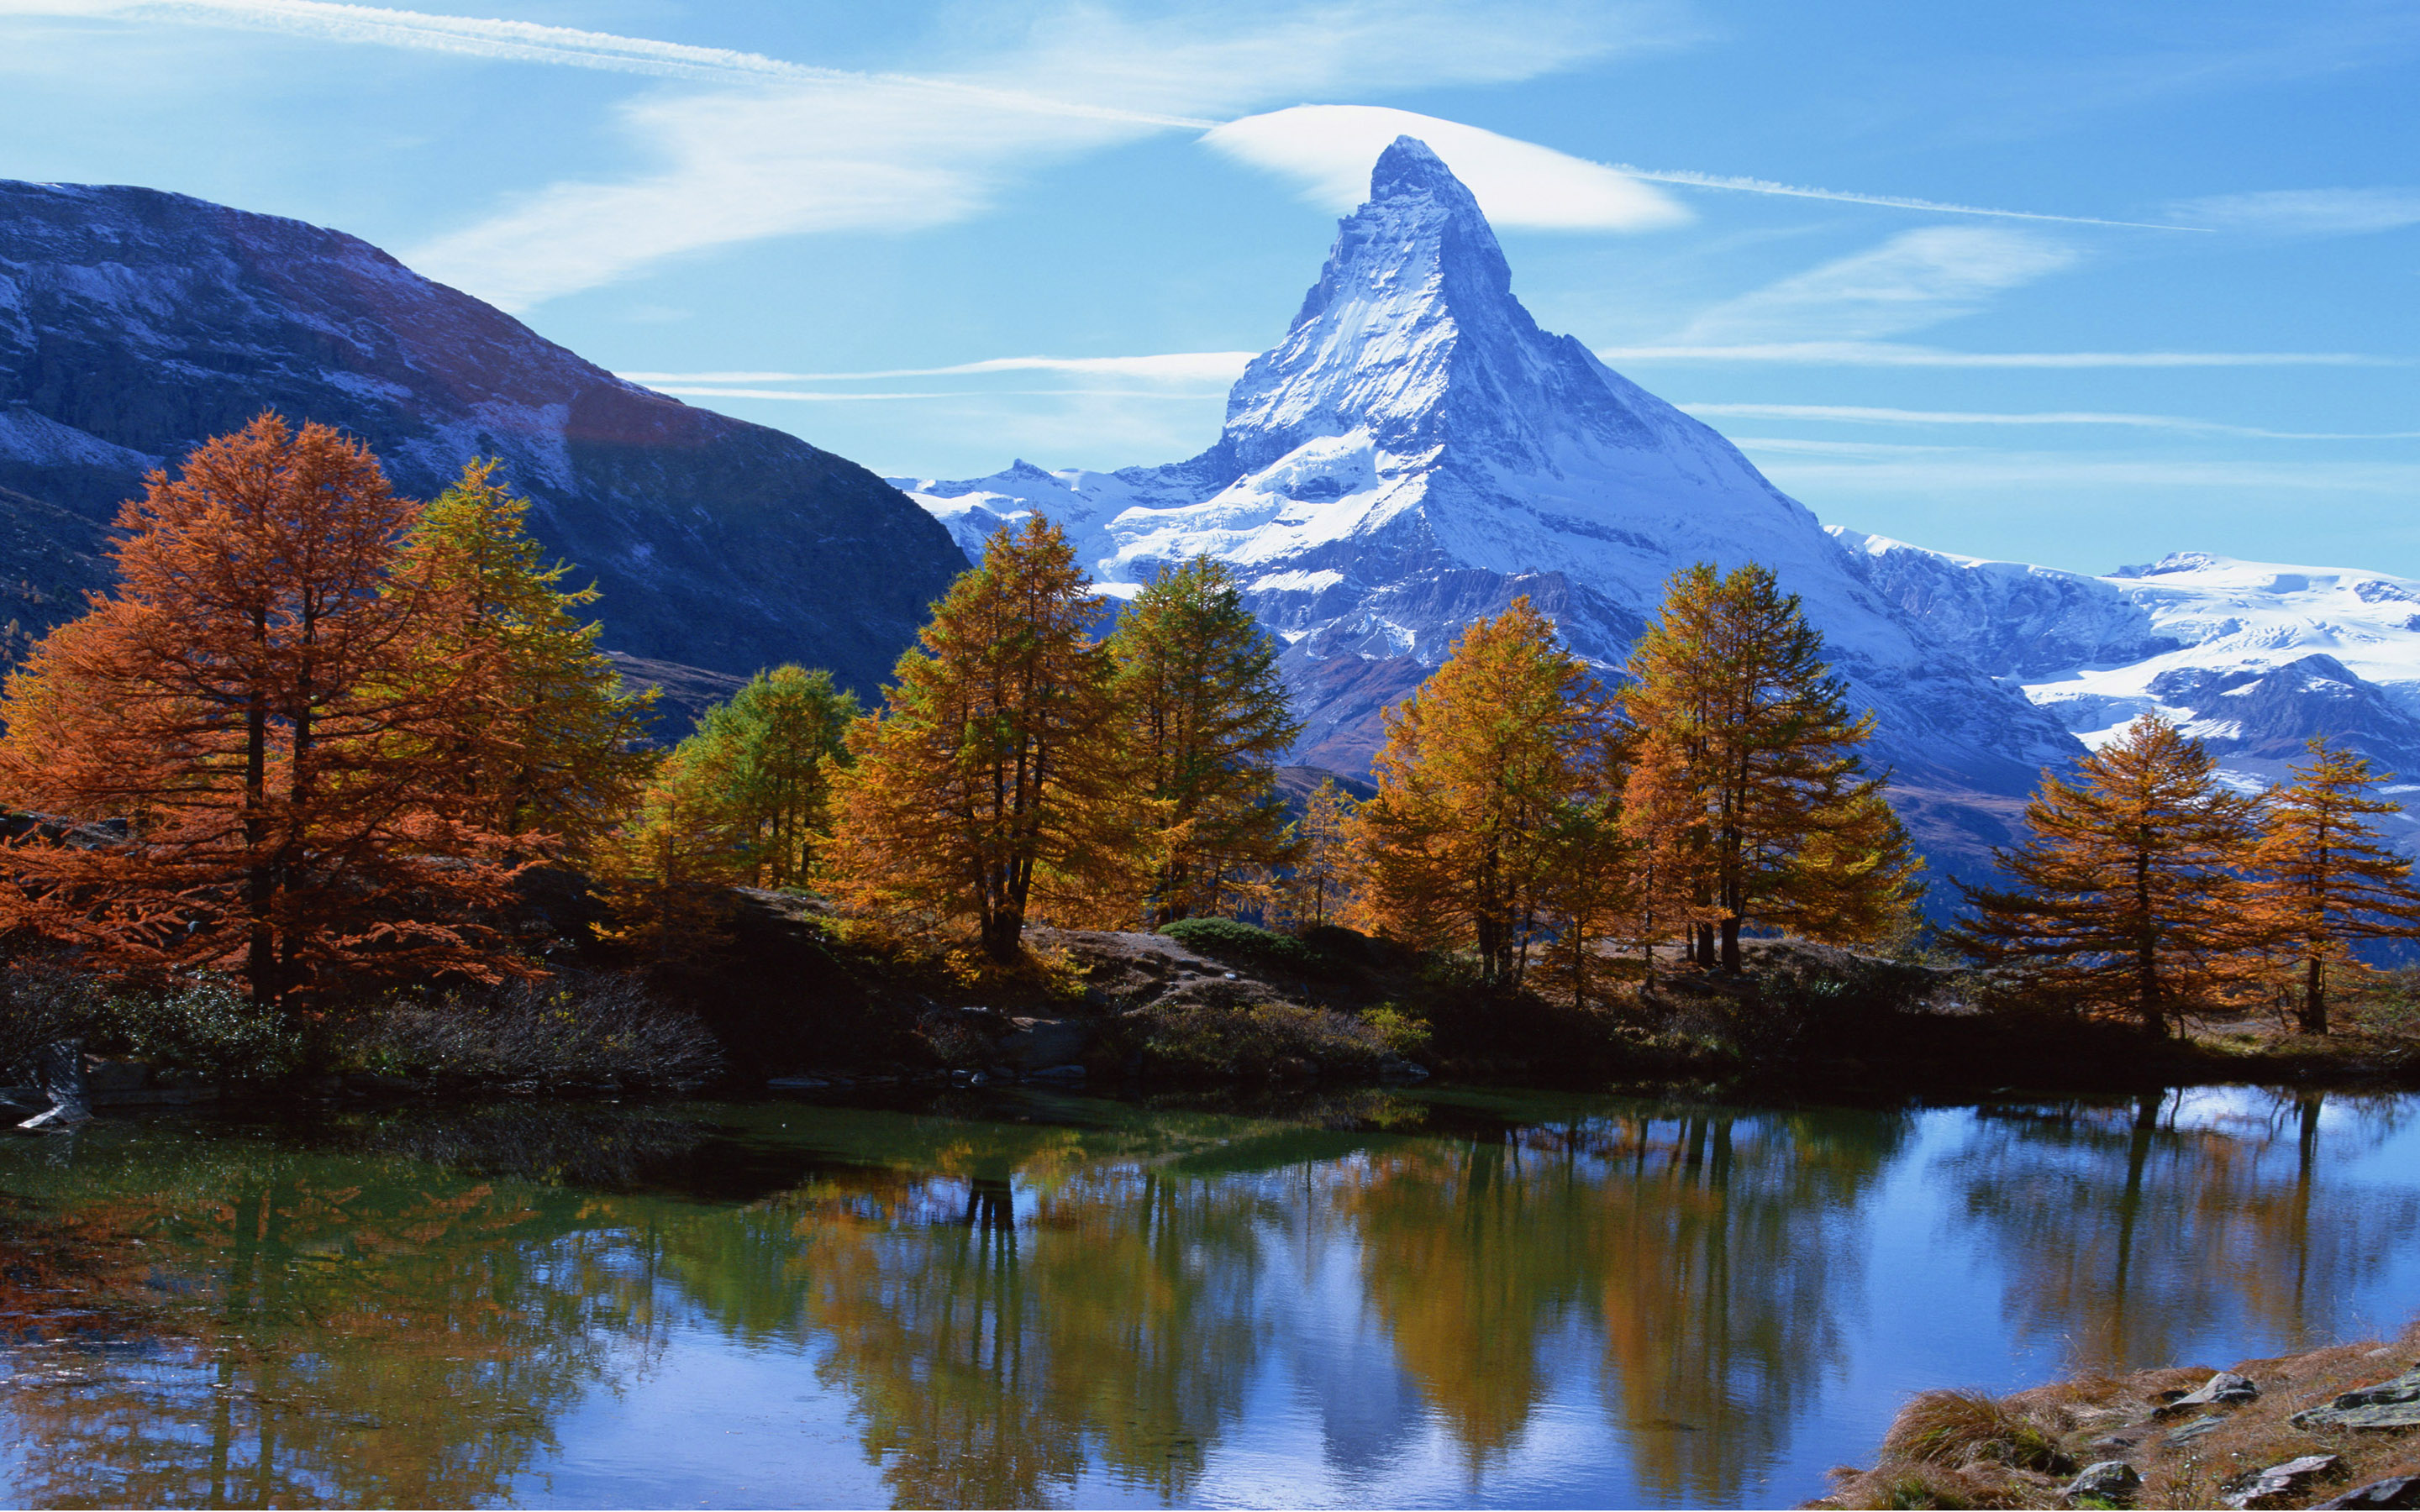 Landscape Mountain Rocky Alpine Peak With Snow Autumn